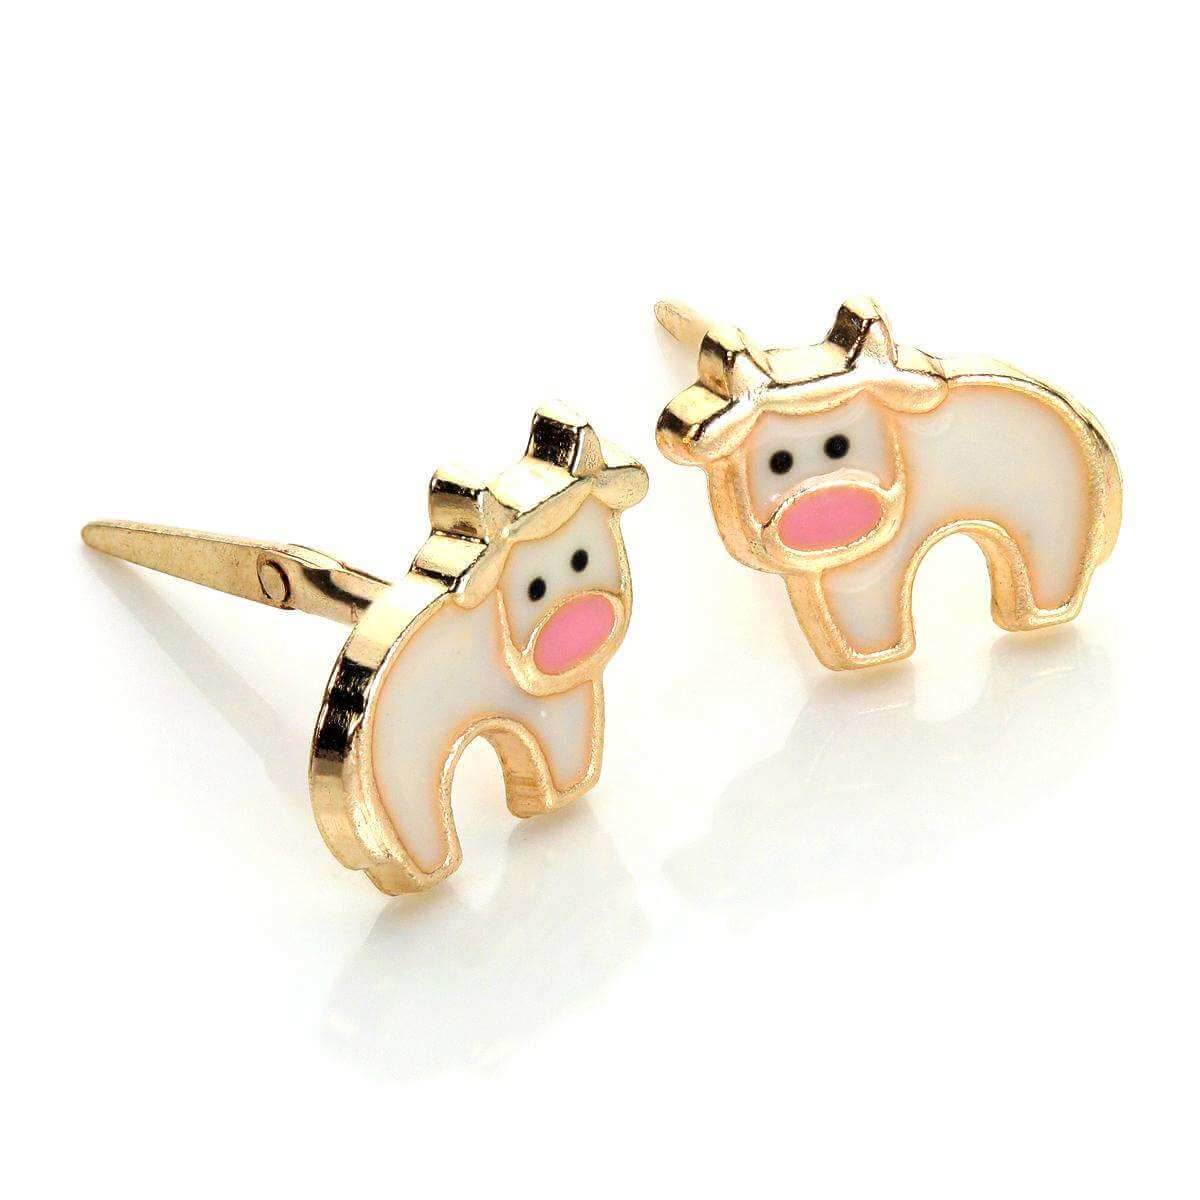 Andralok 9ct Yellow Gold Enamelled Cow Stud Earrings